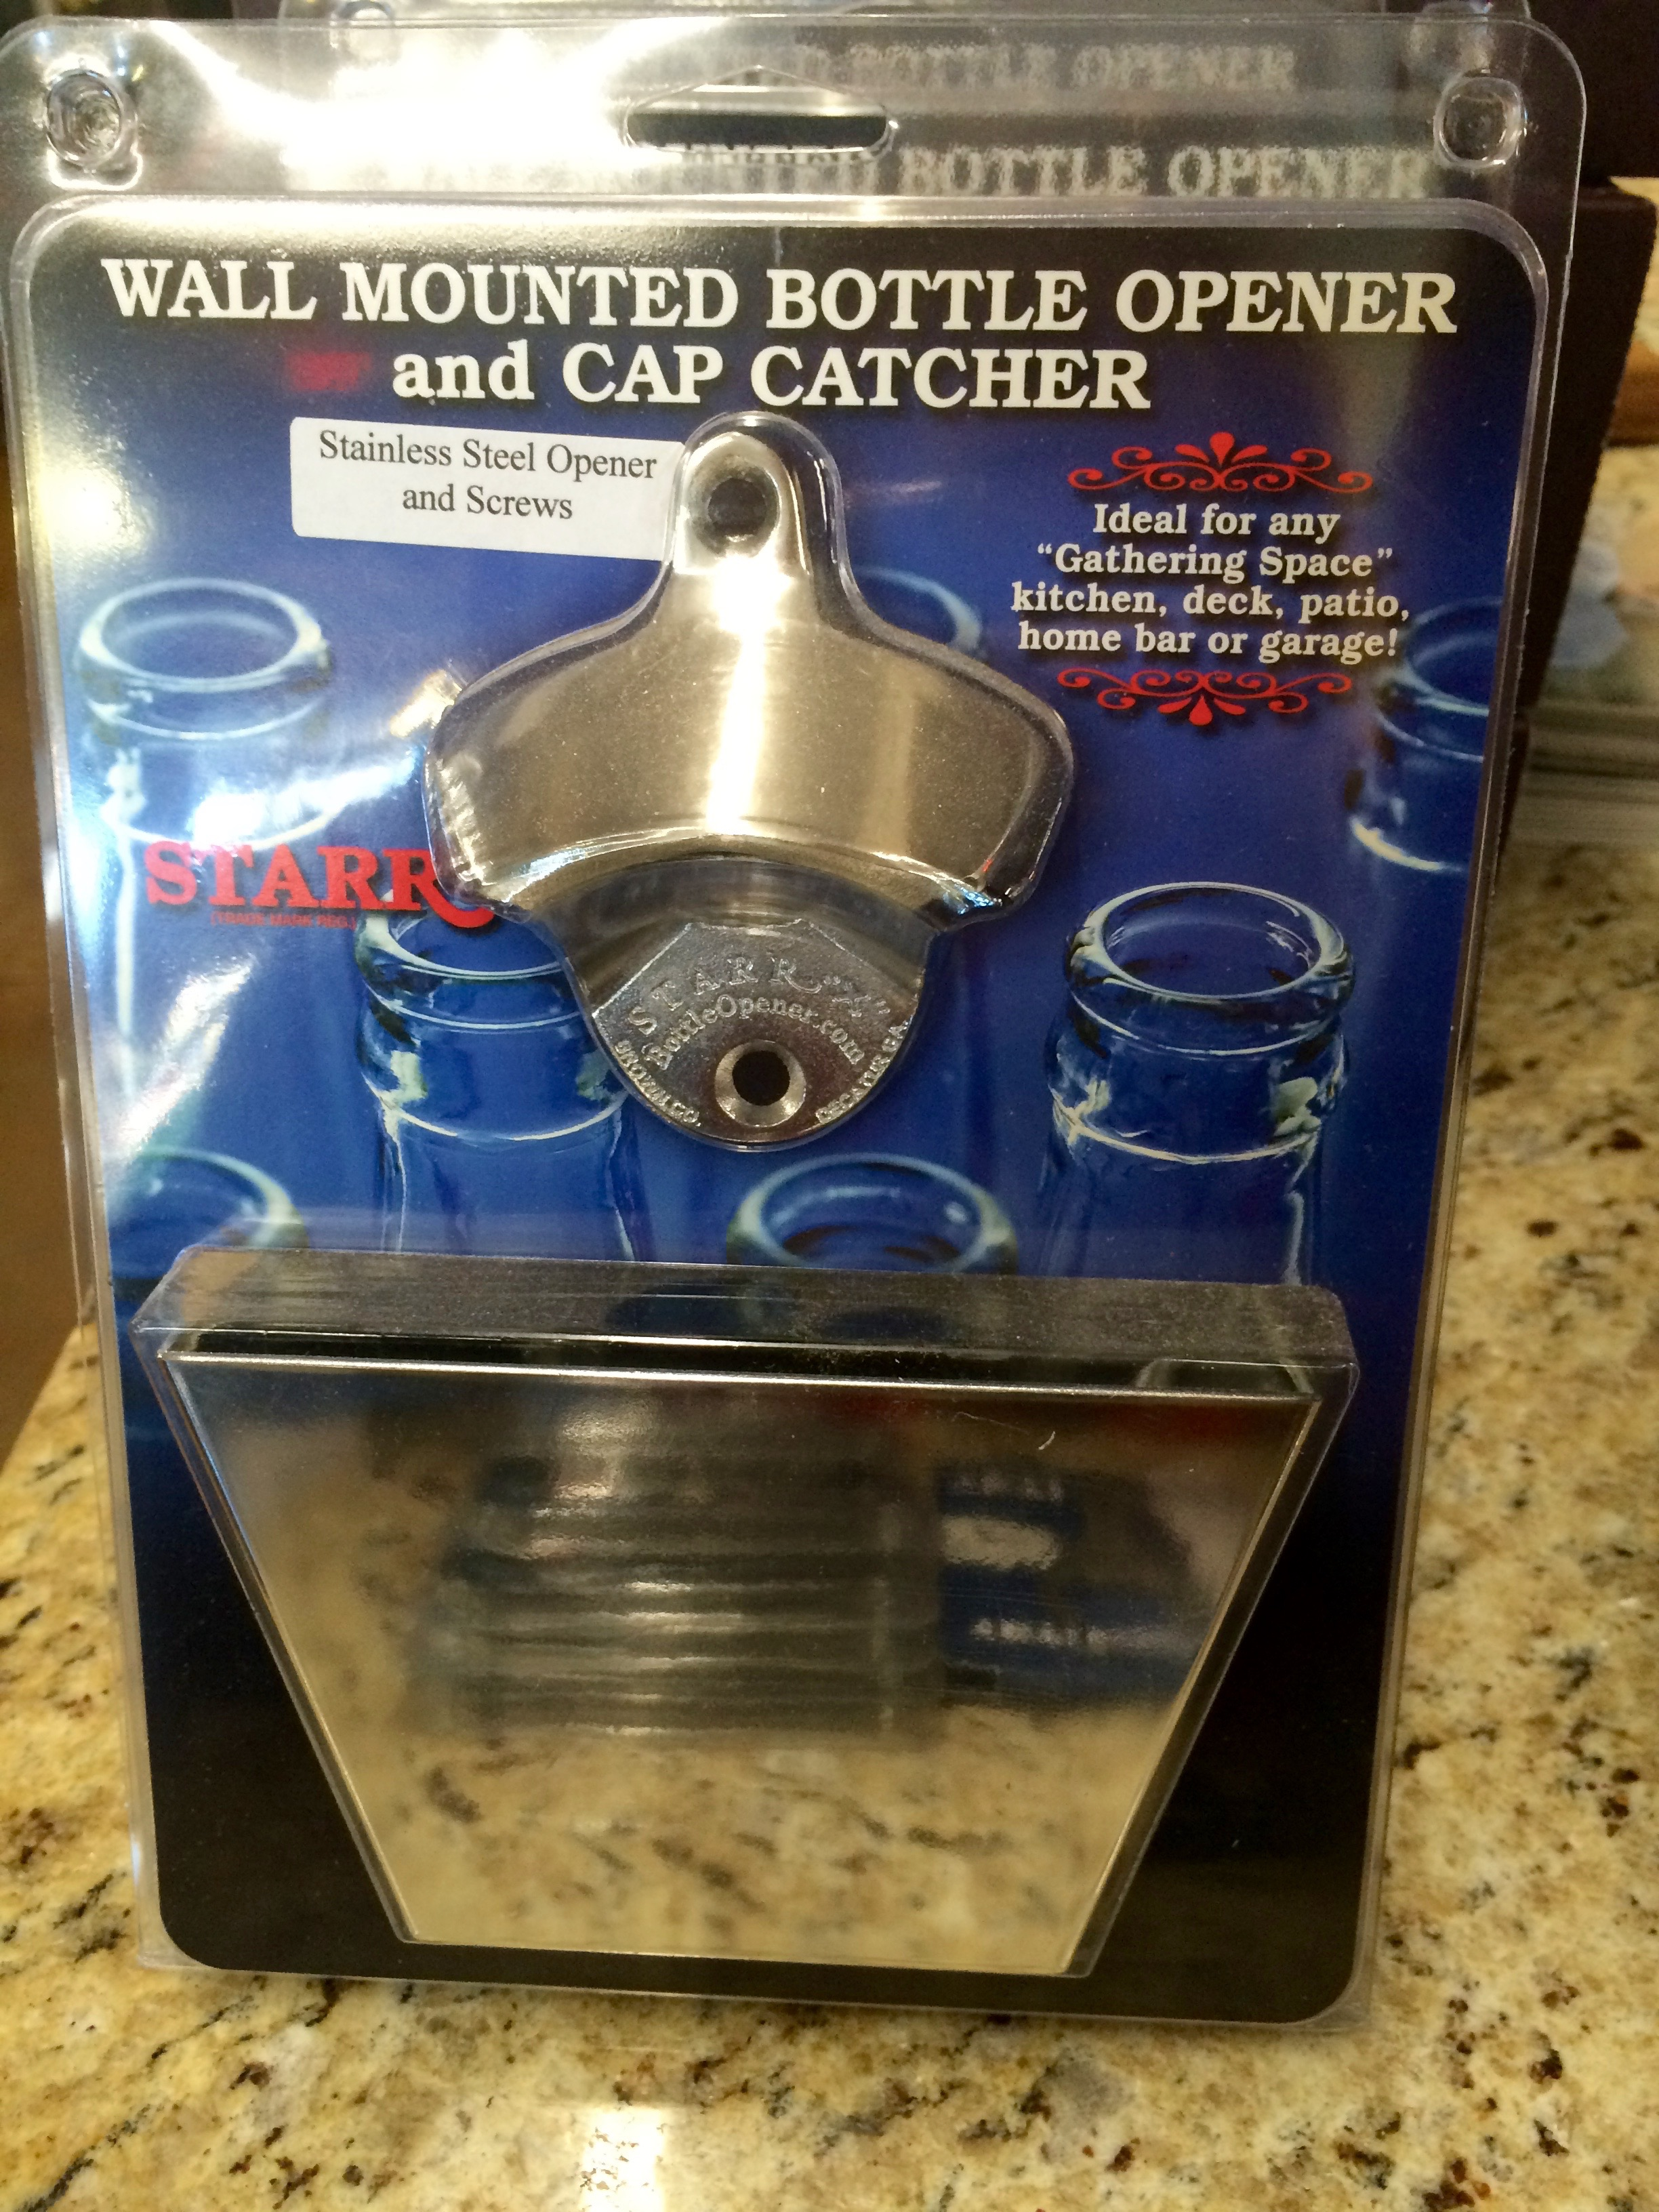 Wall Mounted Beer Opener And Catcher Starr Wall Mounted Bottle Opener And Cap Catcher